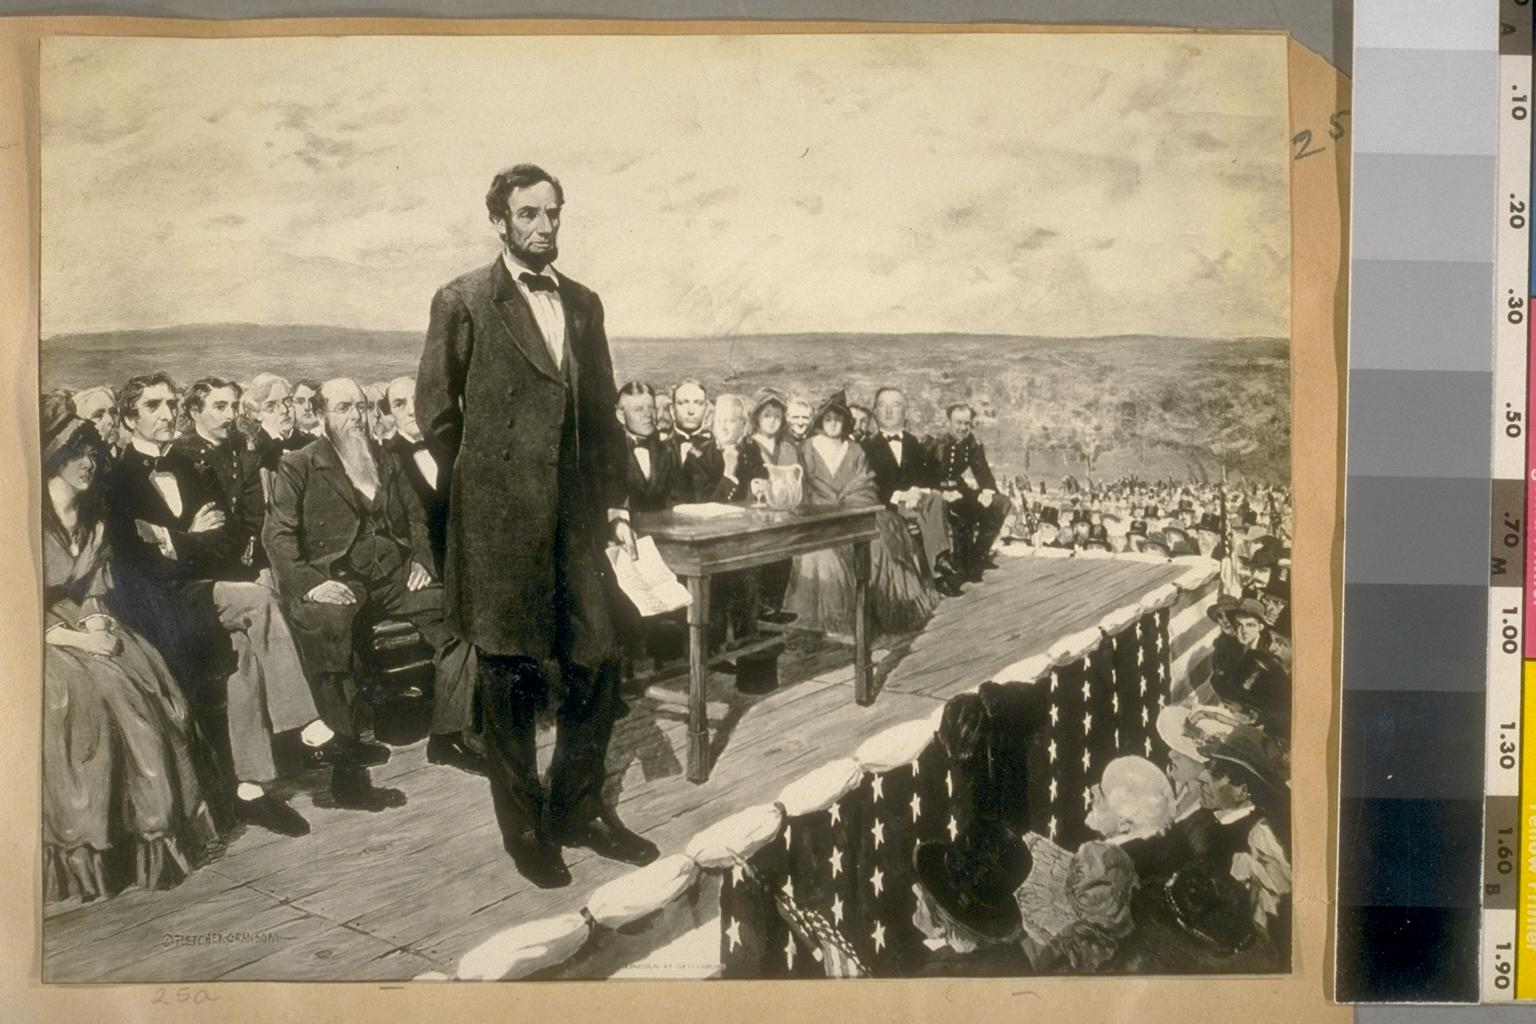 english second inaugural address of abraham 1 abraham lincoln's second inaugural address abraham lincoln2 march 4, 1865 3 fellow-countrymen: 4 5 at this second appearing to take the oath of the presidential office there.